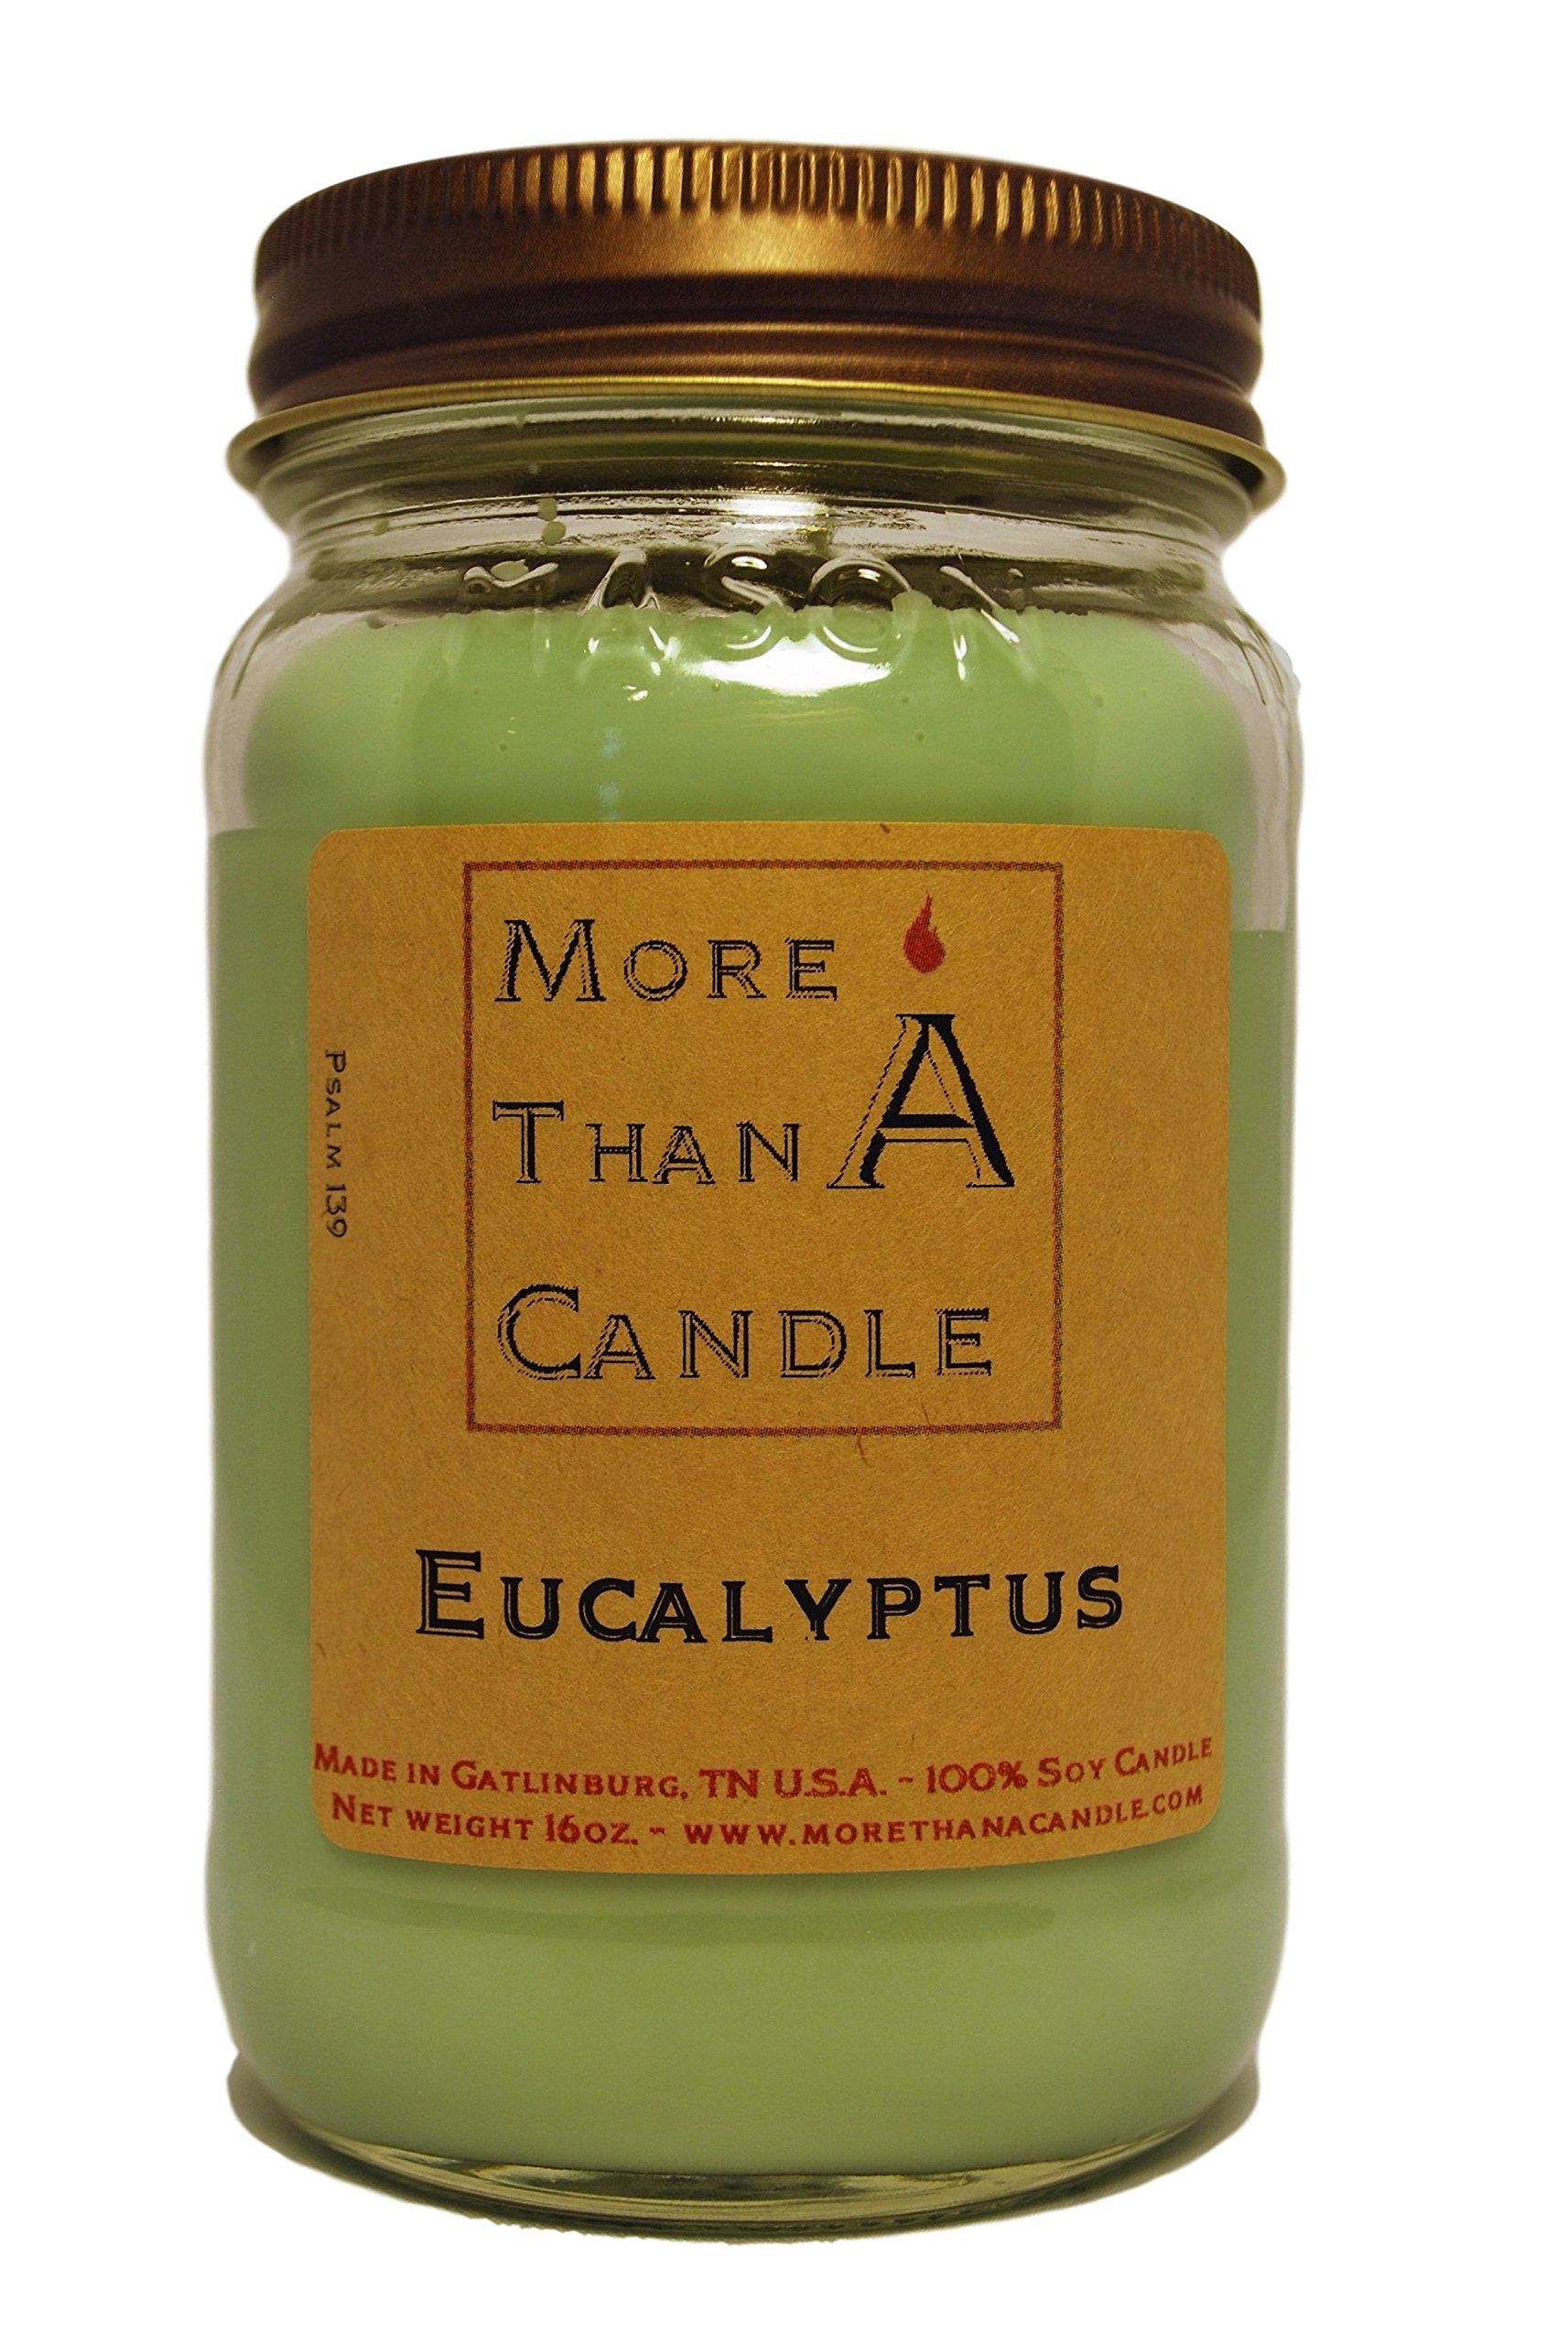 More Than A Candle 16 oz Mason Jar Soy Candle - Made in the USA Eucalyptus